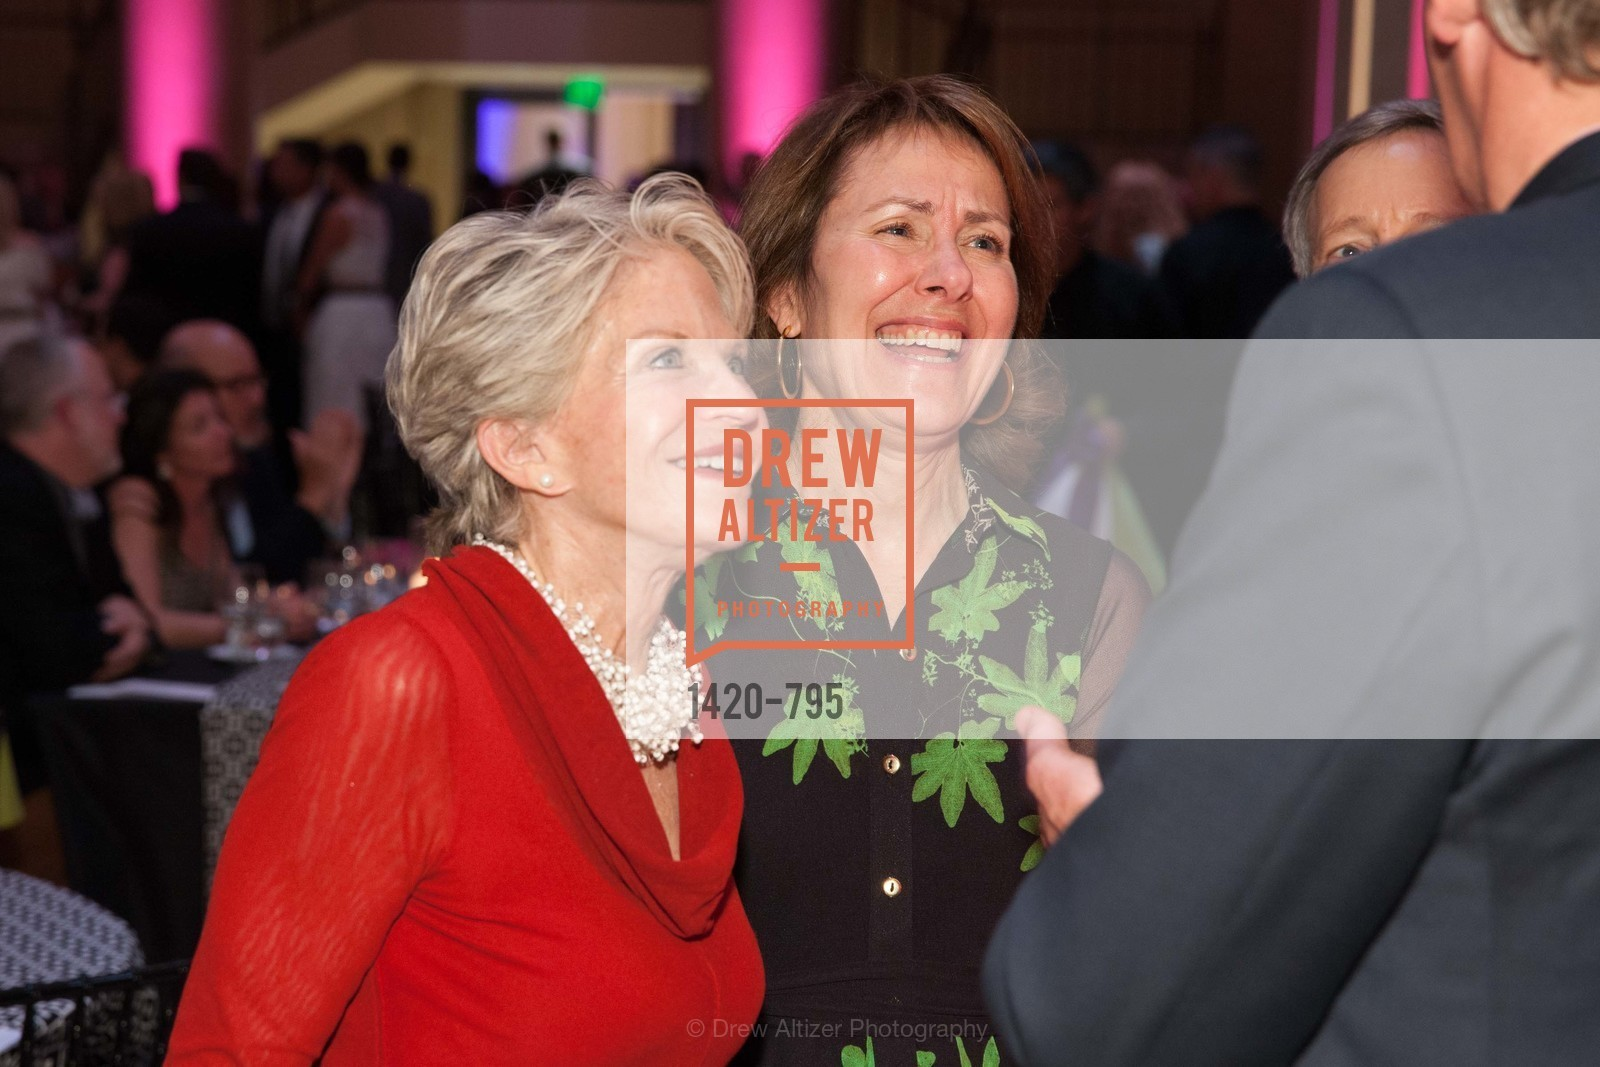 JoAnn Bertges, COMPASS FAMILY SERVICES Annual Spring Benefit:  Every Family Needs A Home, US, April 22nd, 2015,Drew Altizer, Drew Altizer Photography, full-service agency, private events, San Francisco photographer, photographer california